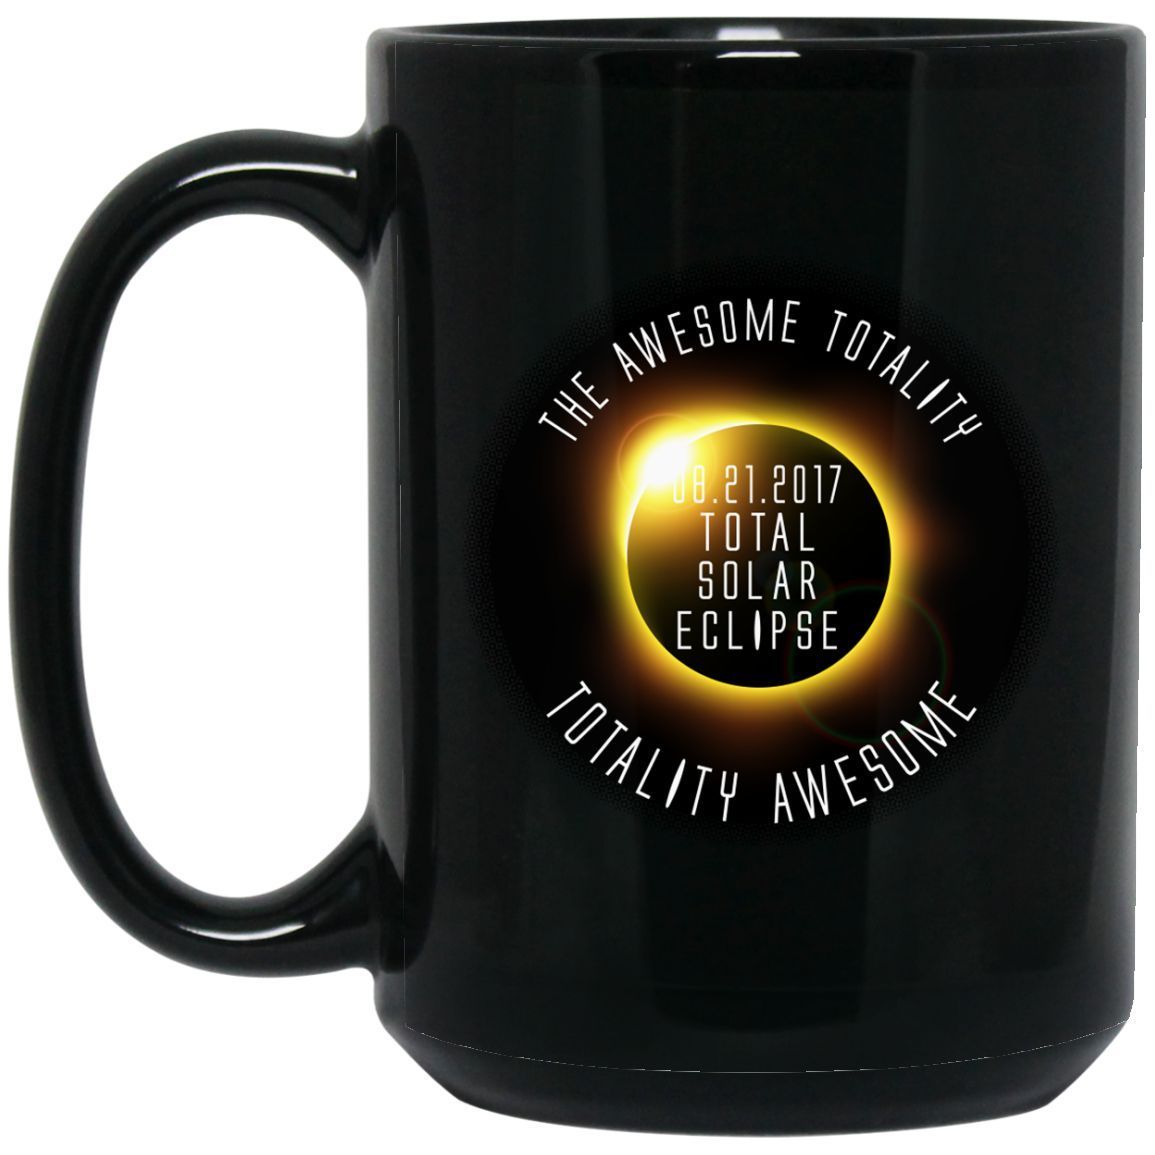 Total Solar Eclipse August 21 2017, Totally Awesome Coffee Mug